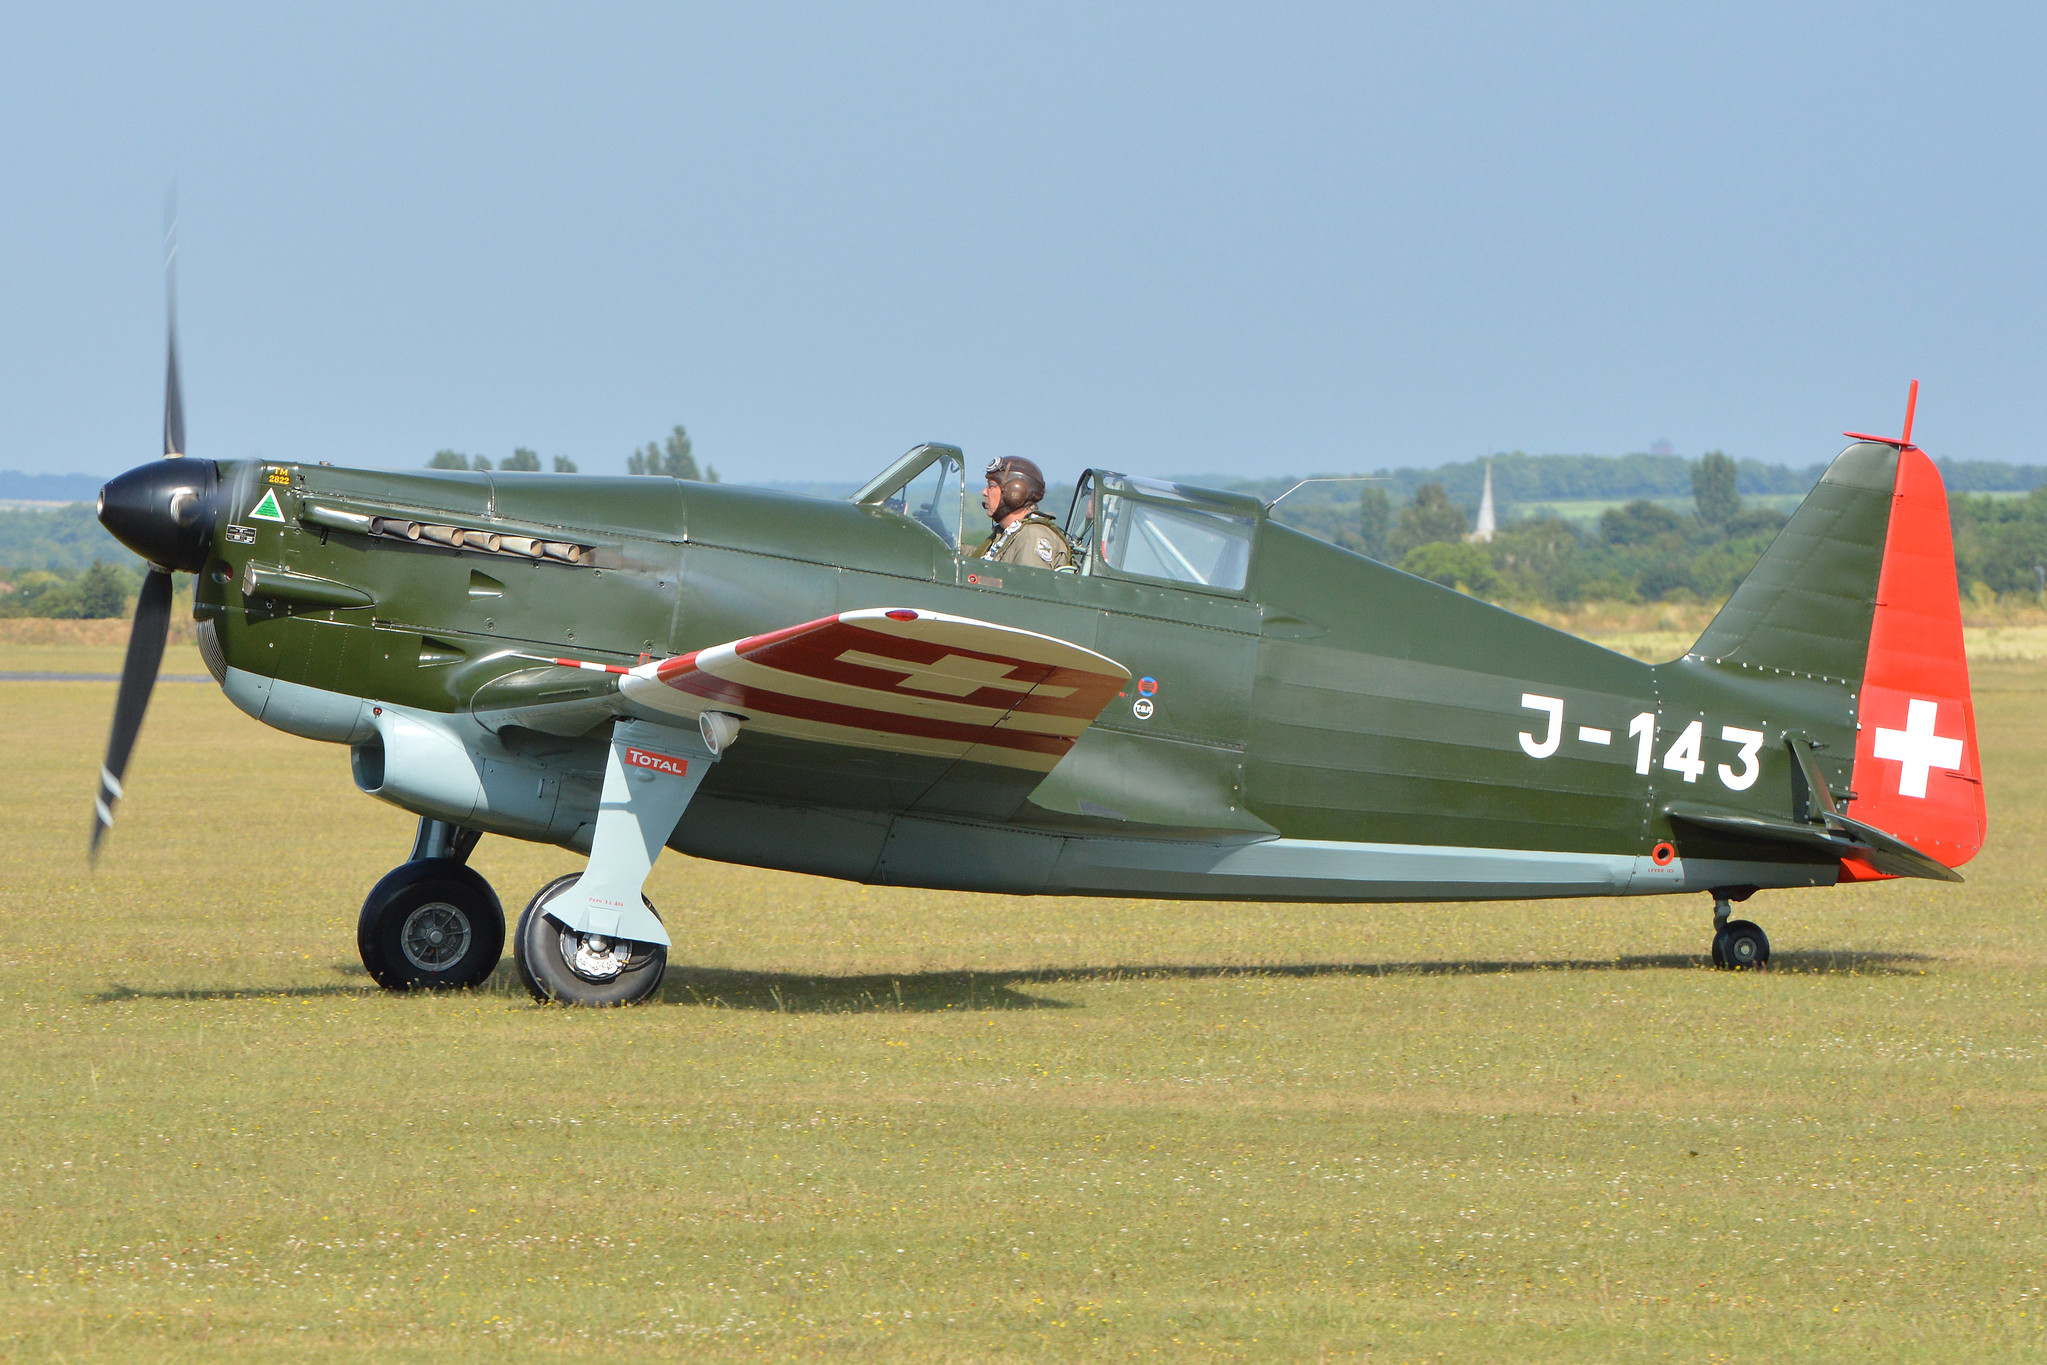 Daniel Koblet at the controls of the Morane-Saulnier D-3801 (MS.406) HB-RCF at Duxford in 2015 (Photo Alan Wilson (CC BY-SA 2.0))